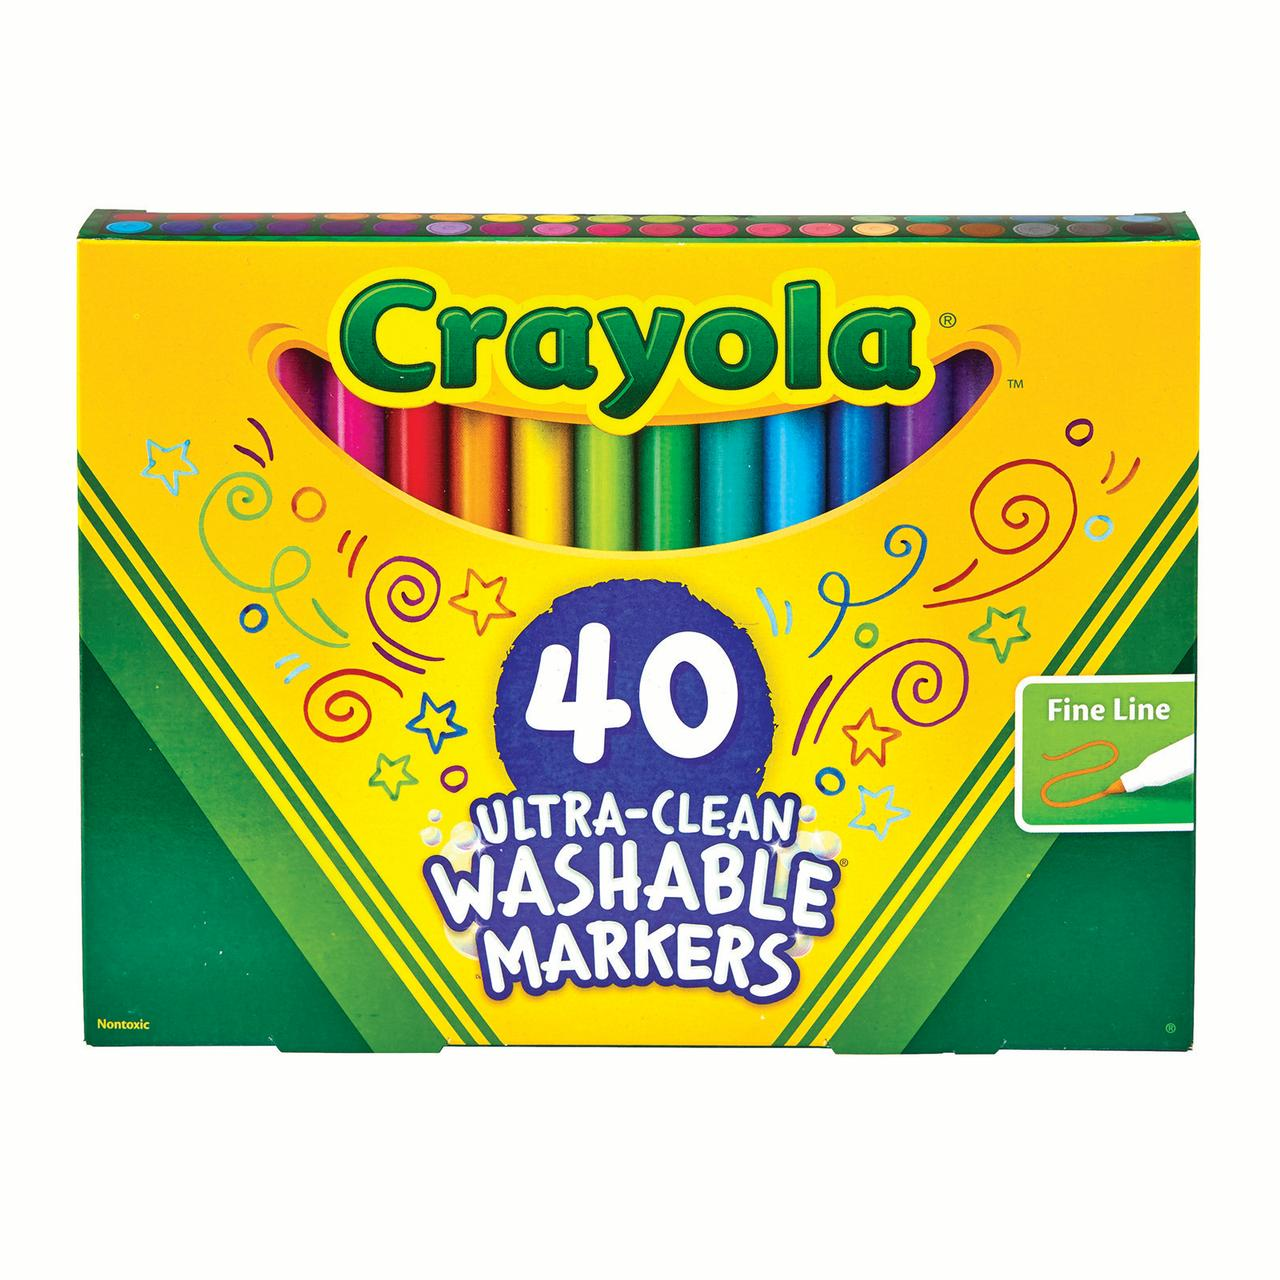 Crayola Ultra-Clean Washable Marker Set, Fine Line, School Supplies, 40 Count